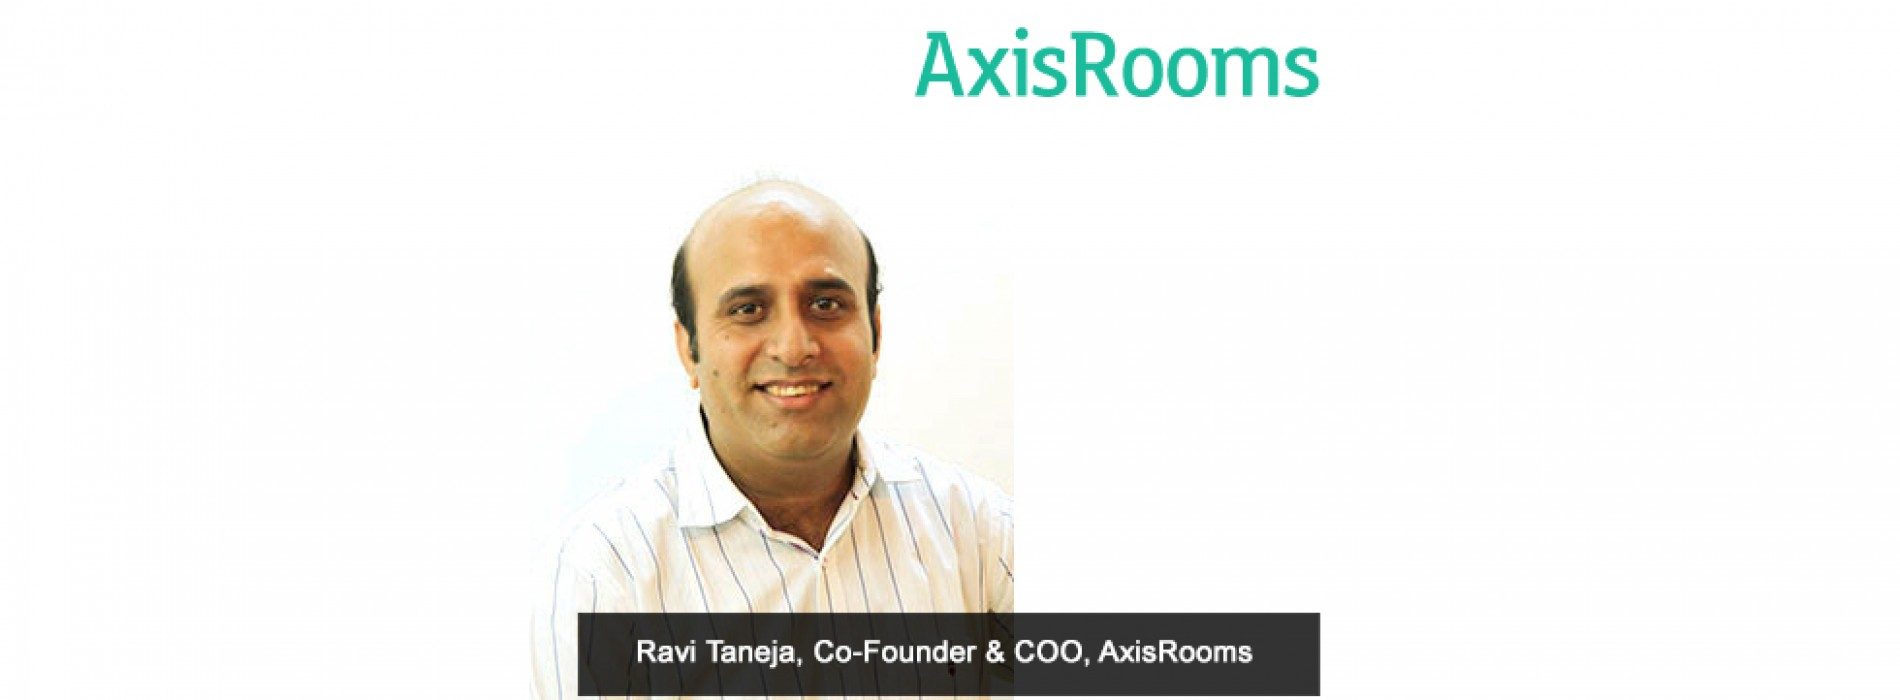 Homeowners with multiple properties can now easily monetise them with the AxisRooms Vacation Rental Product